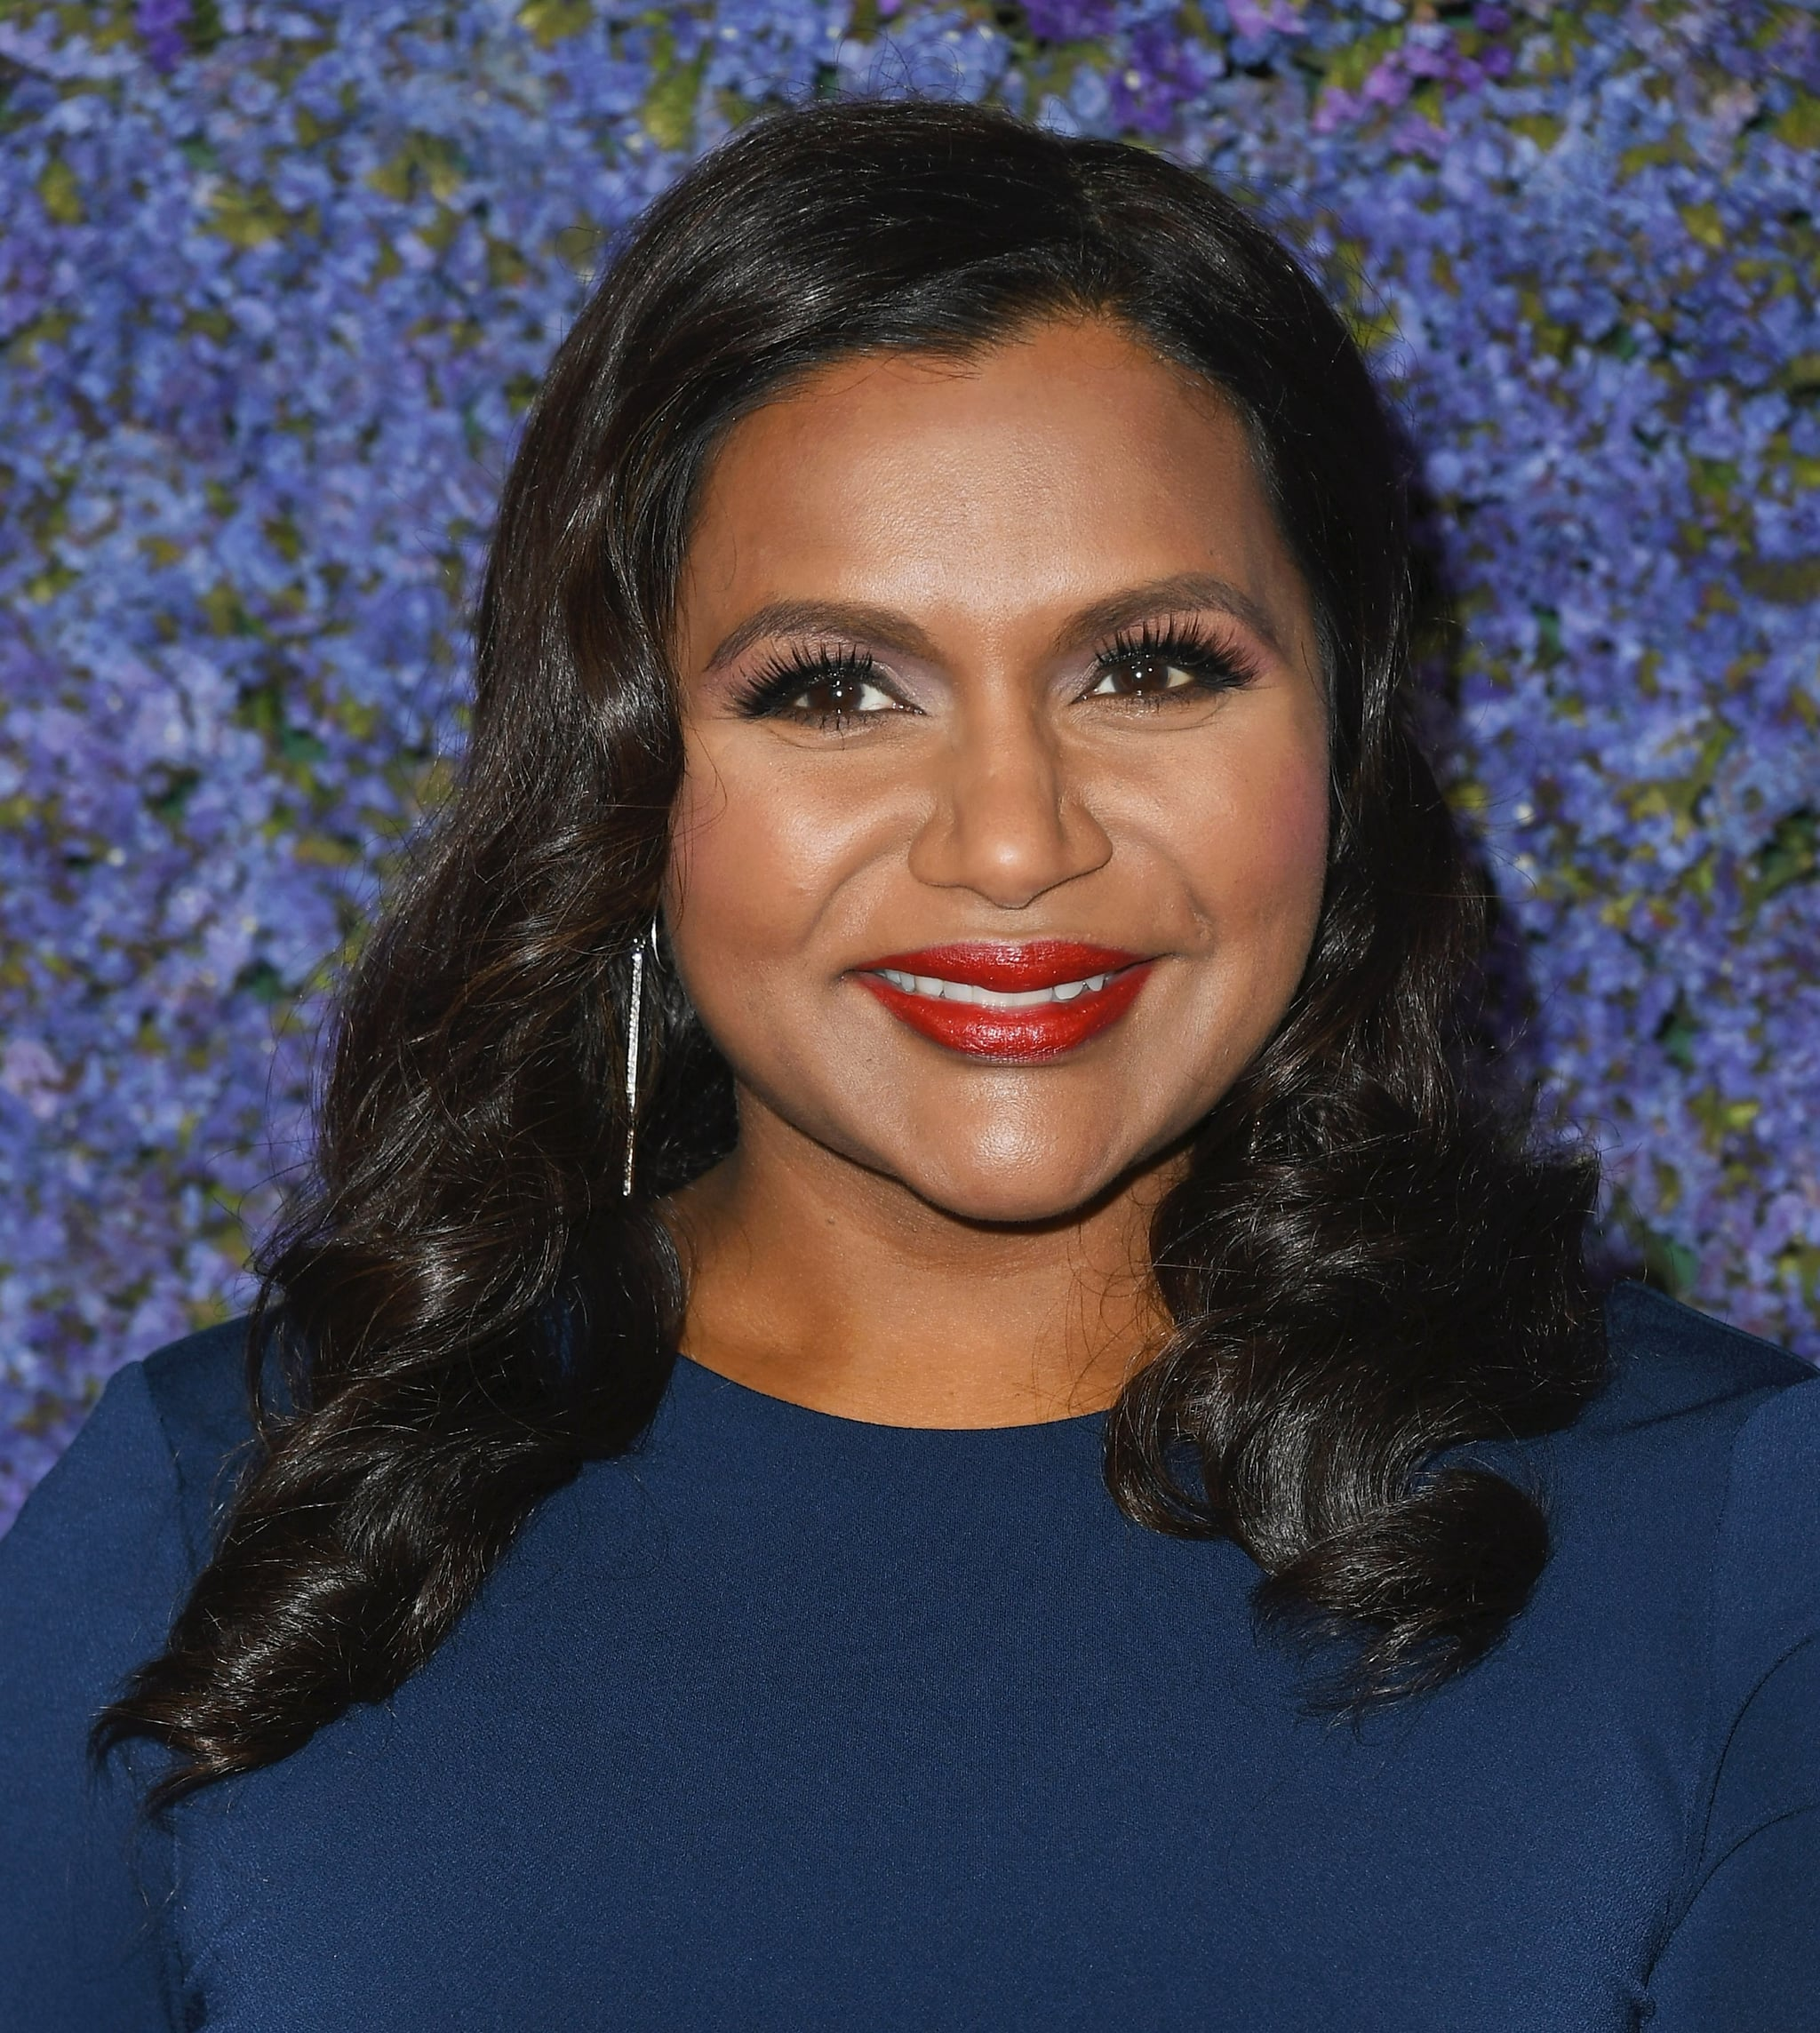 PACIFIC PALISADES, CA - SEPTEMBER 20:  Mindy Kaling attends Caruso's Palisades Village Opening Gala at Palisades Village on September 20, 2018 in Pacific Palisades, California.  (Photo by Jon Kopaloff/FilmMagic)